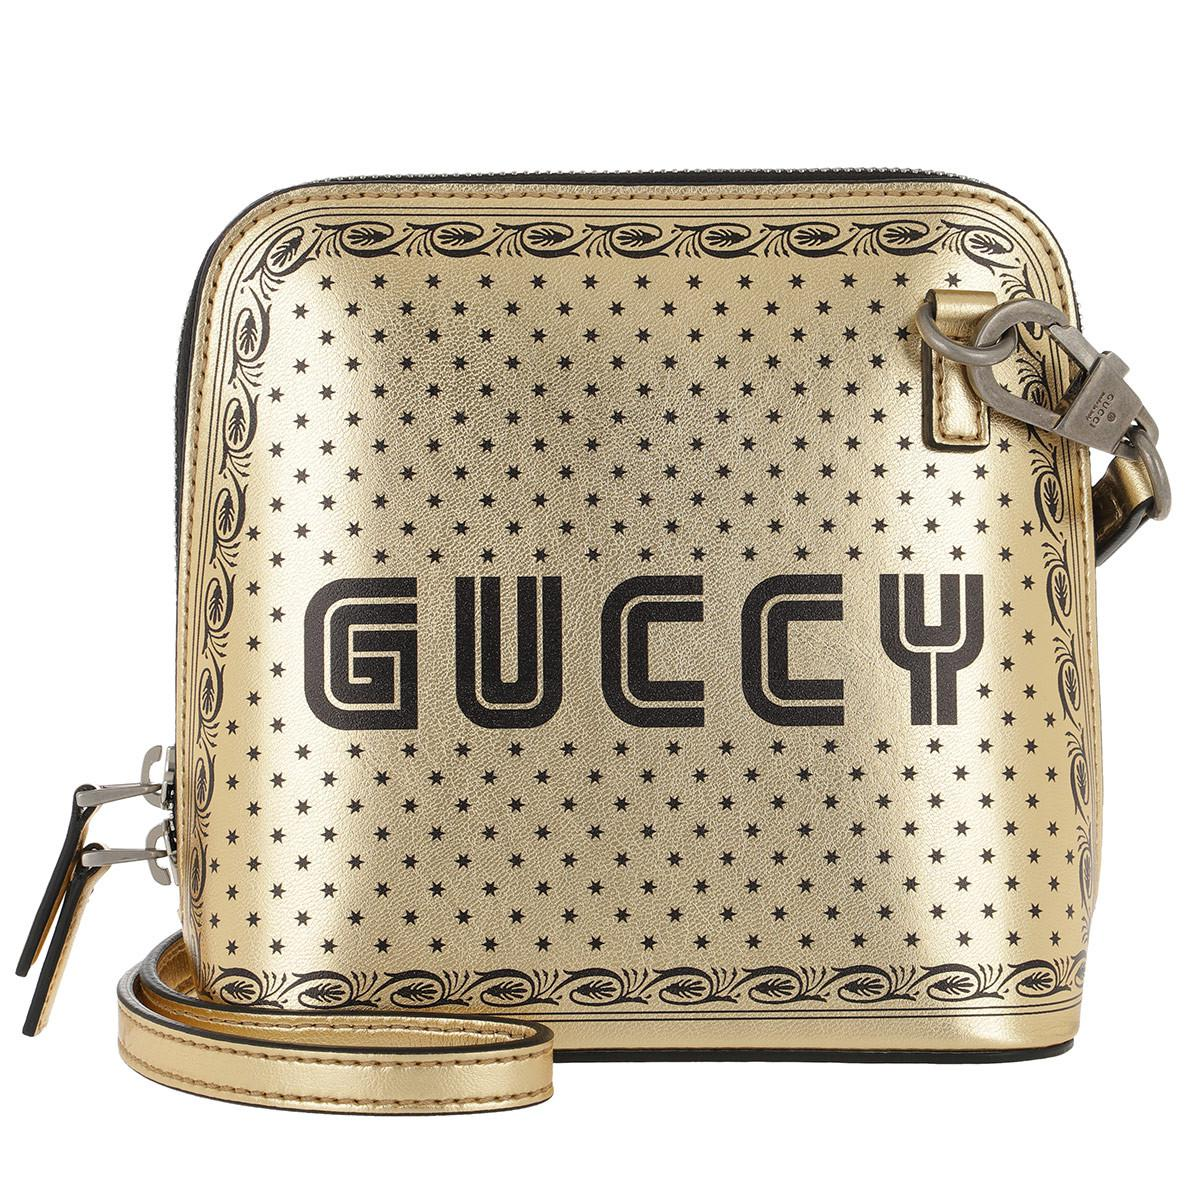 5ecc9baa7e3d8e Gucci Gold-tone Guccy Mini Leather Shoulder Bag in Metallic - Save ...